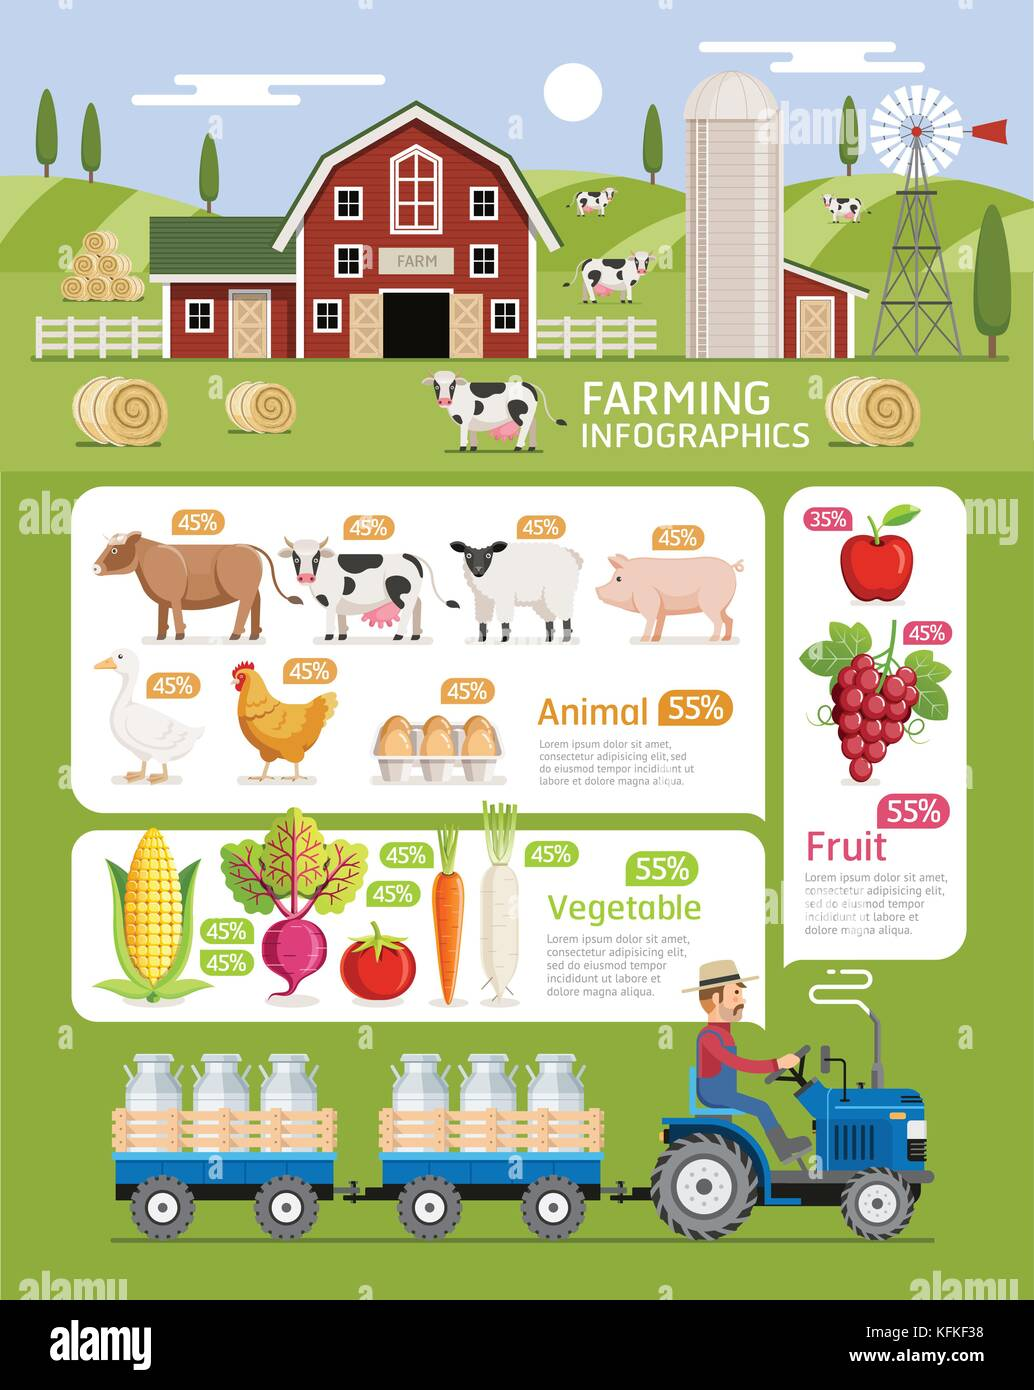 hight resolution of farming infographic elements template vector illustration can be used for workflow layout banner diagram web designs